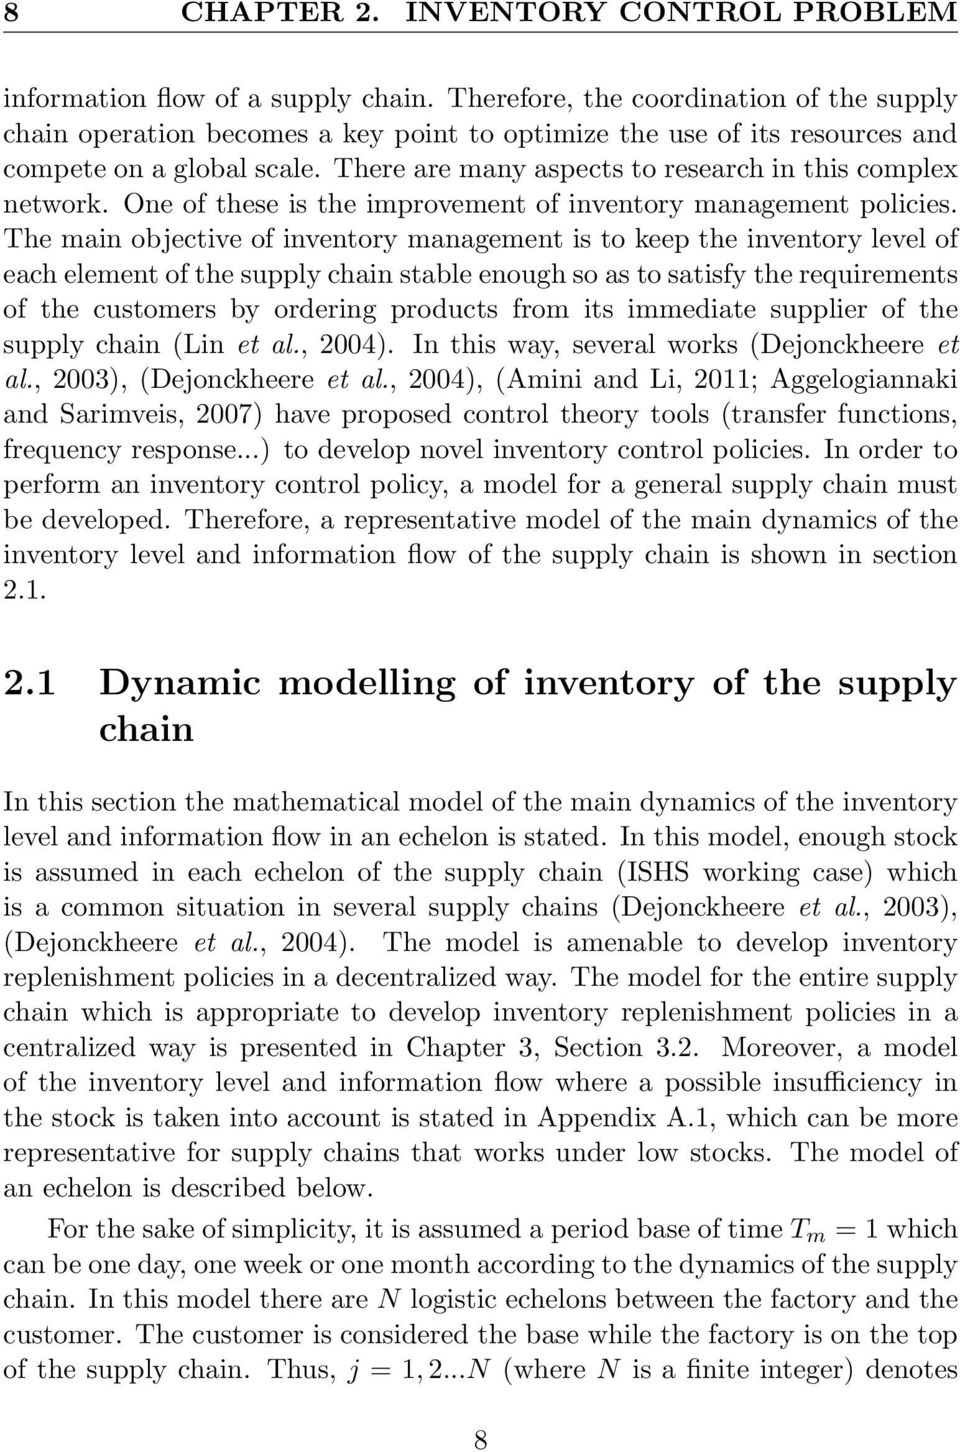 There are many aspects to research in this complex network. One of these is the improvement of inventory management policies.